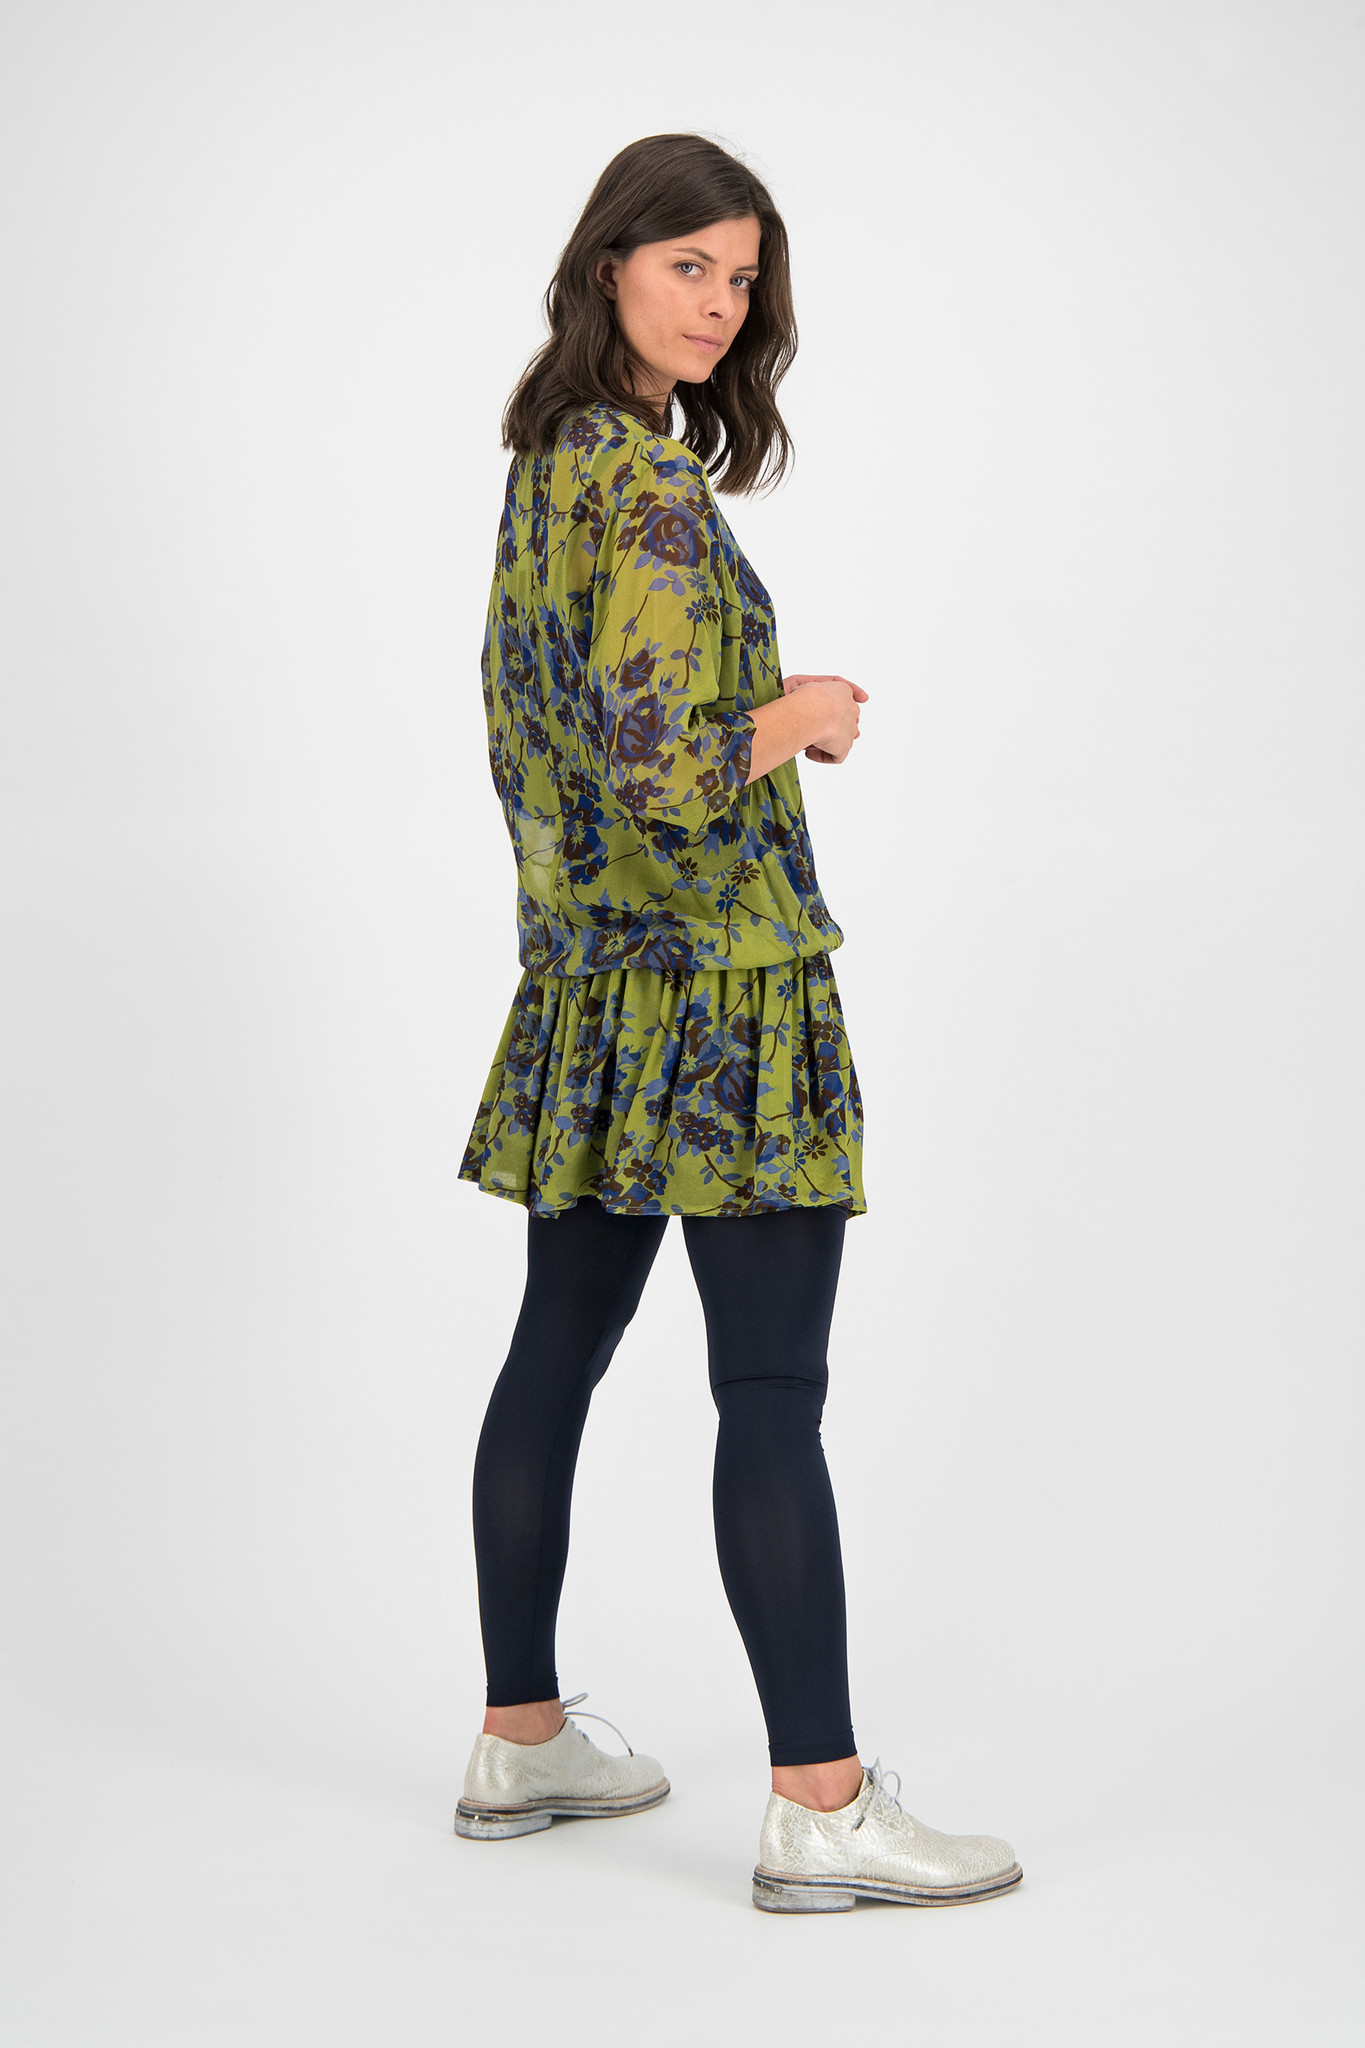 SYLVER Blue Flowers Dress - Moss